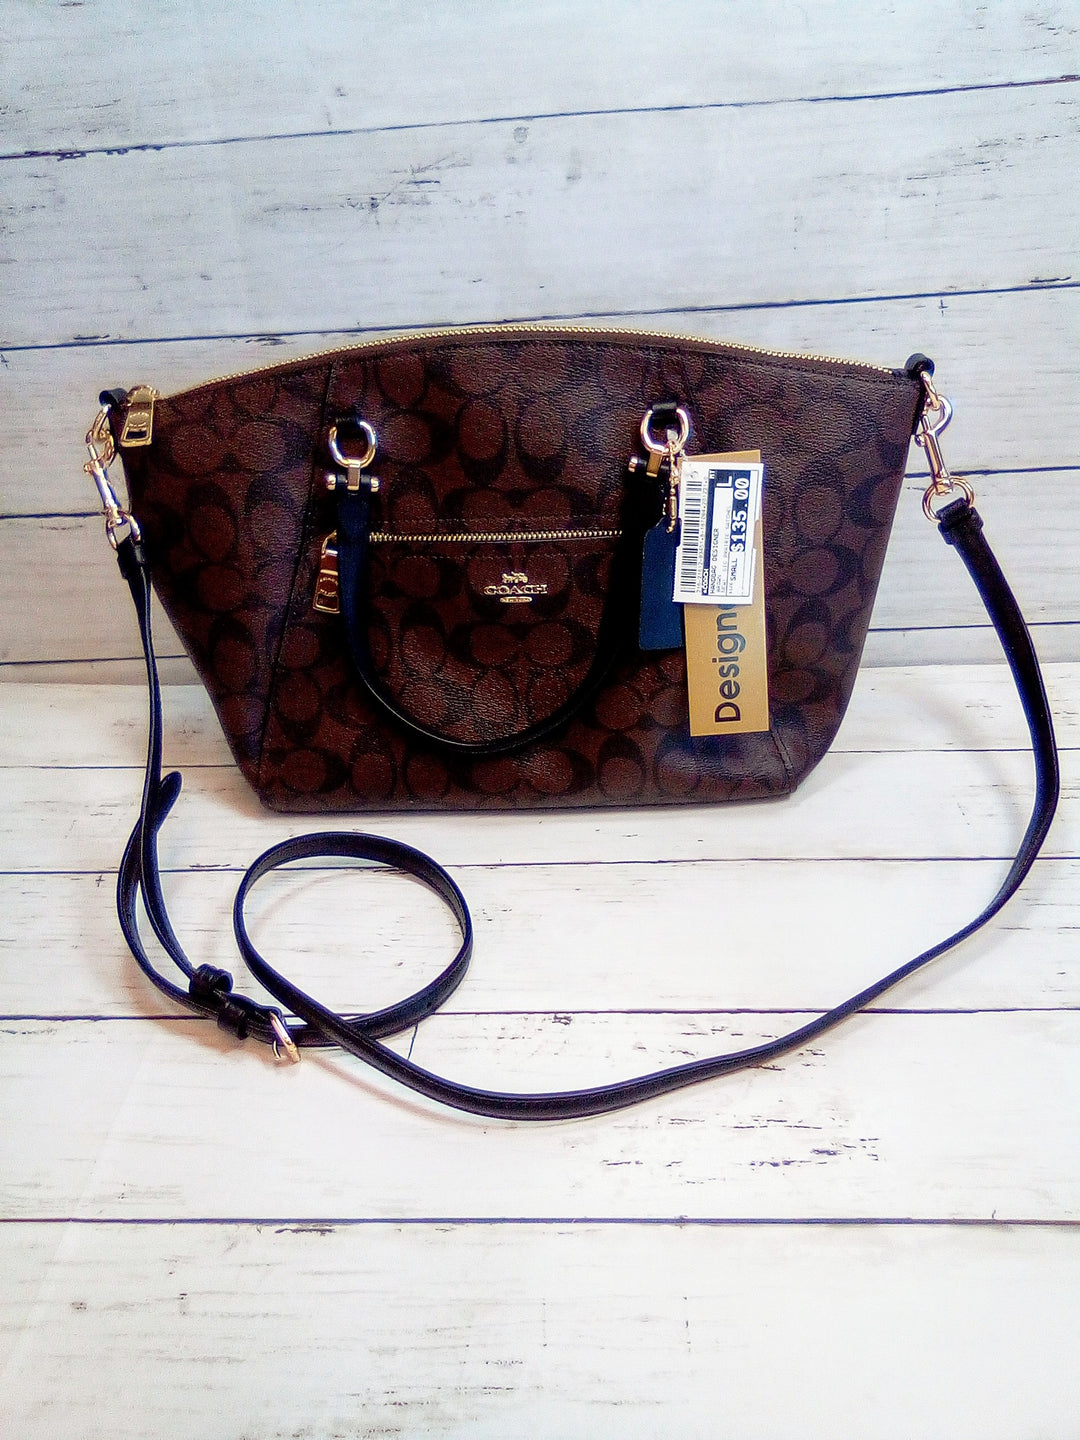 Primary Photo - BRAND: COACH <BR>STYLE: HANDBAG DESIGNER <BR>COLOR: BROWN <BR>SIZE: SMALL <BR>OTHER INFO: NEW!  SIG PRAIRIE SATCHEL <BR>SKU: 216-21612-83451